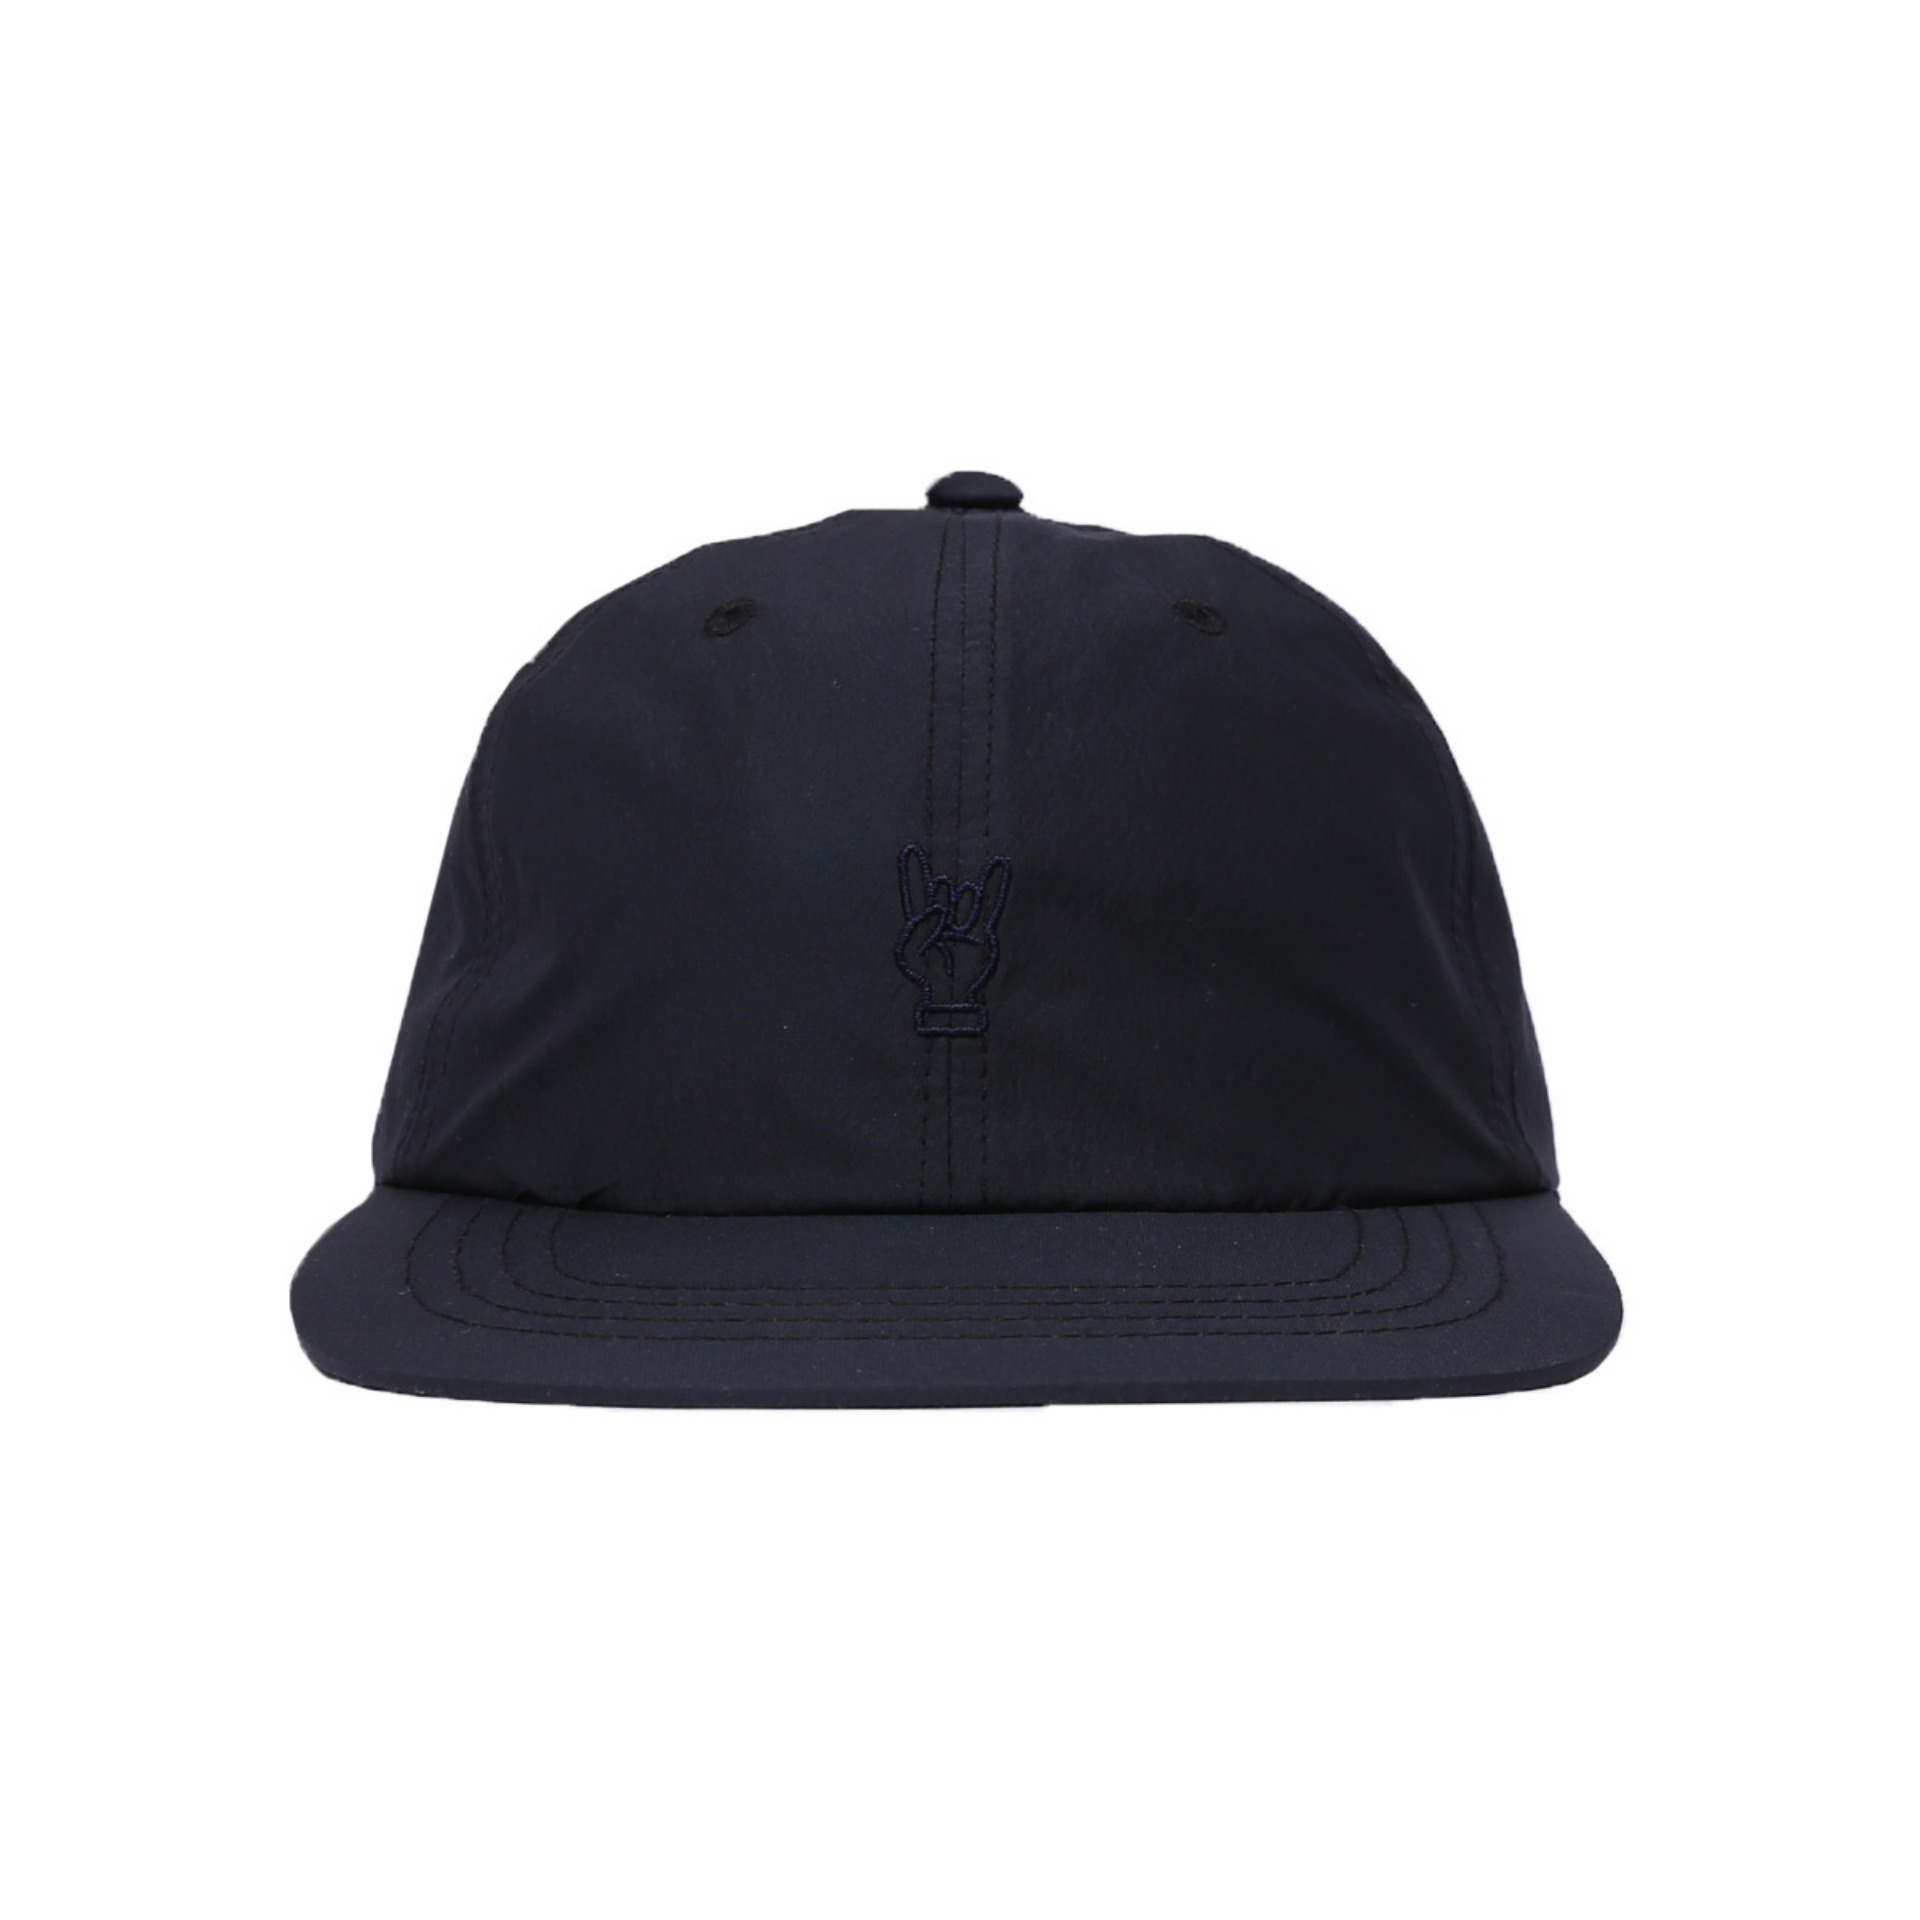 6PANNEL BALL CAP (DEEP NAVY)